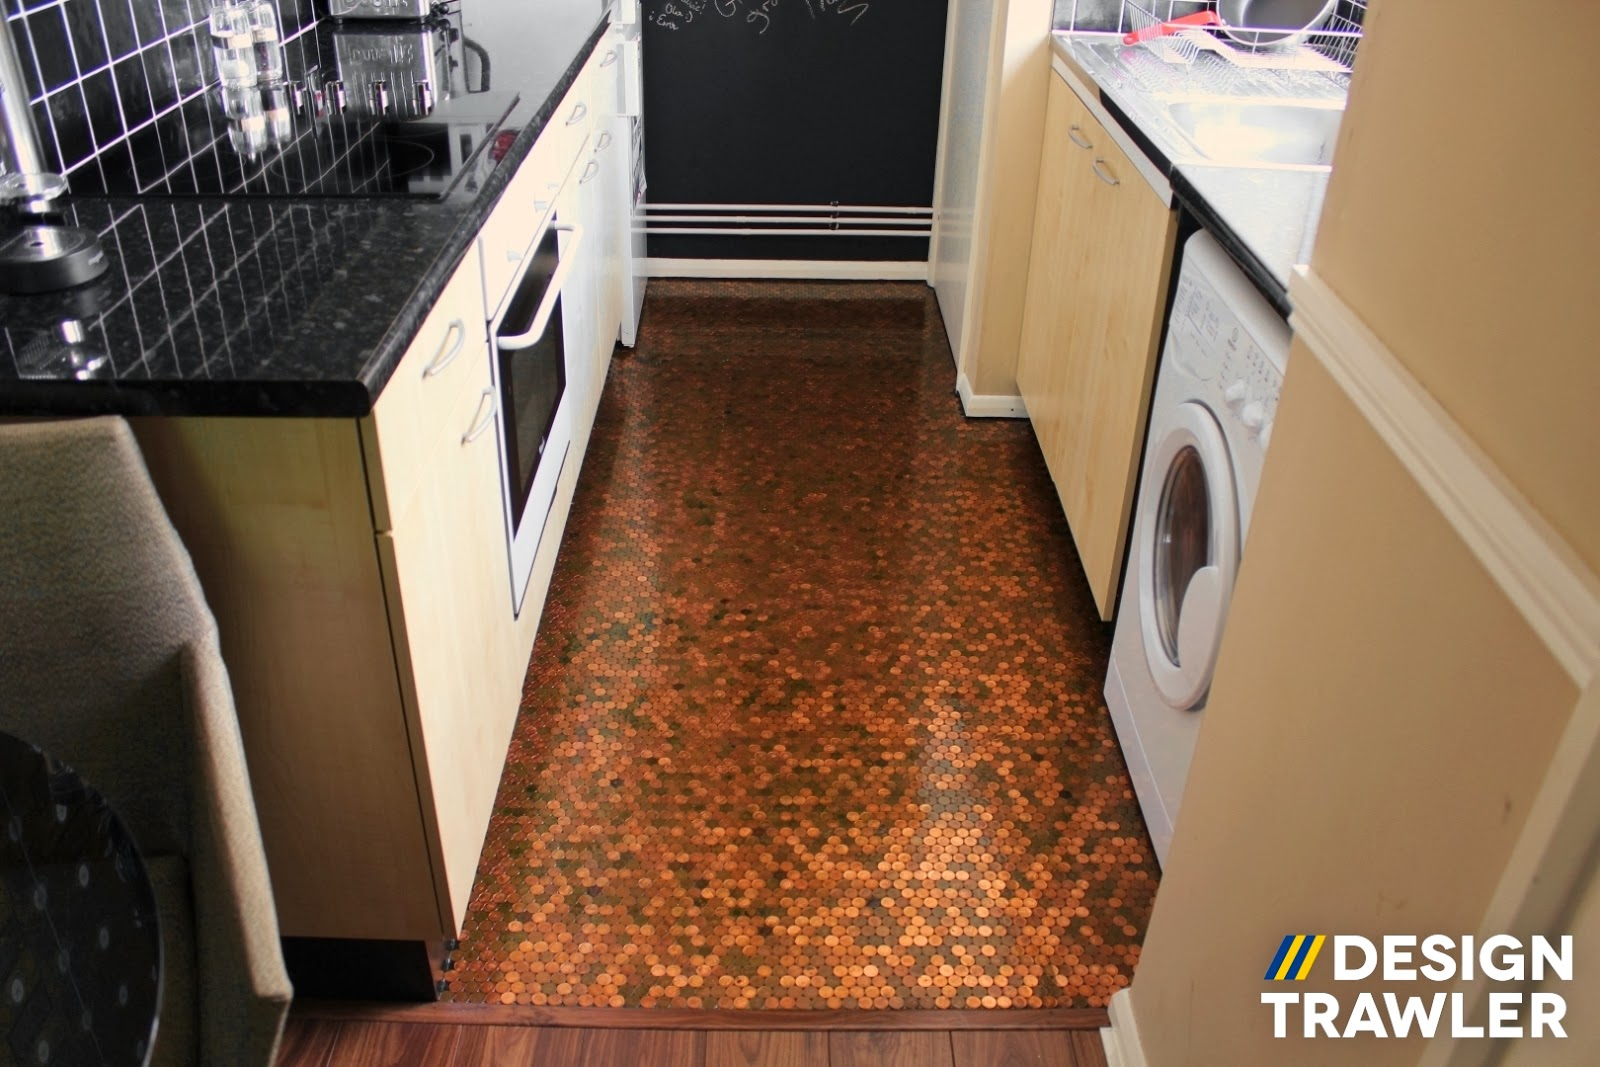 Kitchen Floorings Design Trawler The Penny Floor That Started A Craze